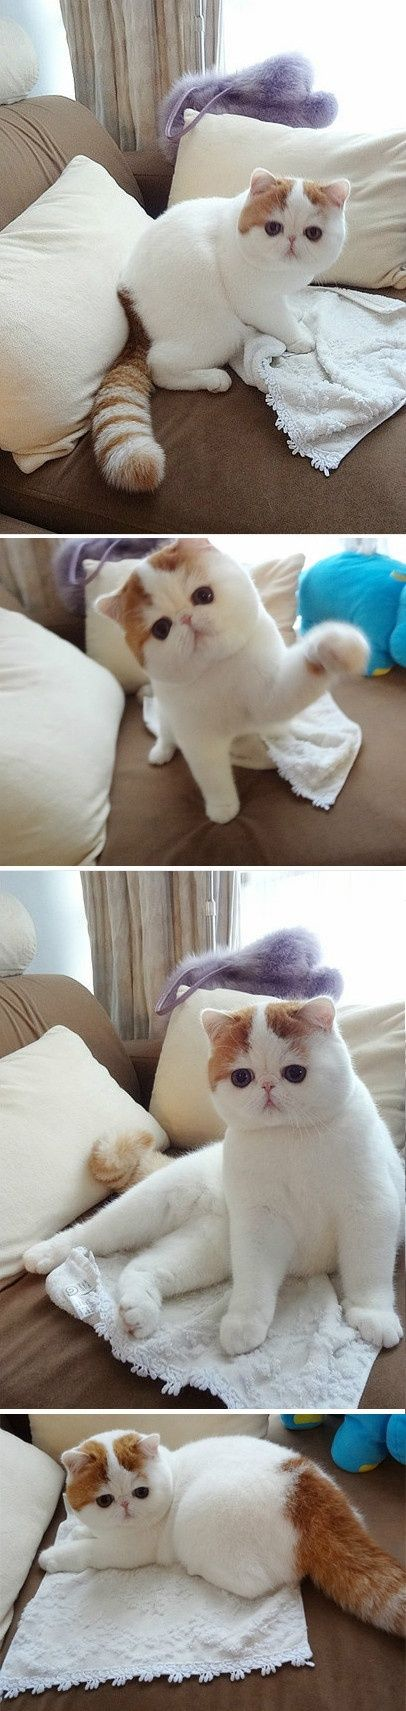 Did I mention I want this cat?.